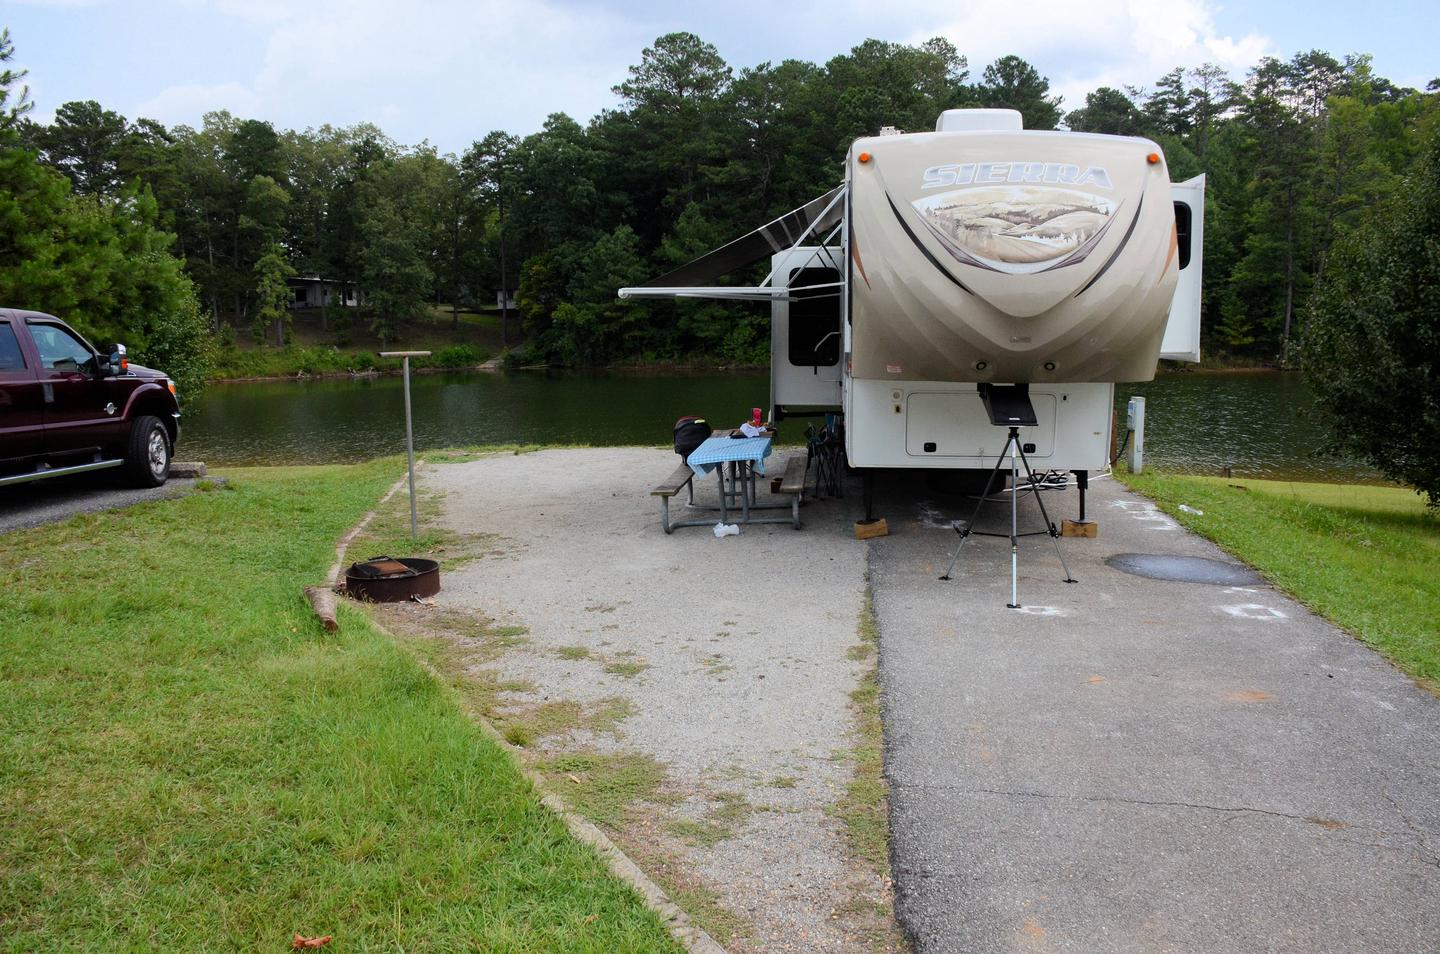 Driveway slope, awning-side clearance.Payne Campground, campsite 10.